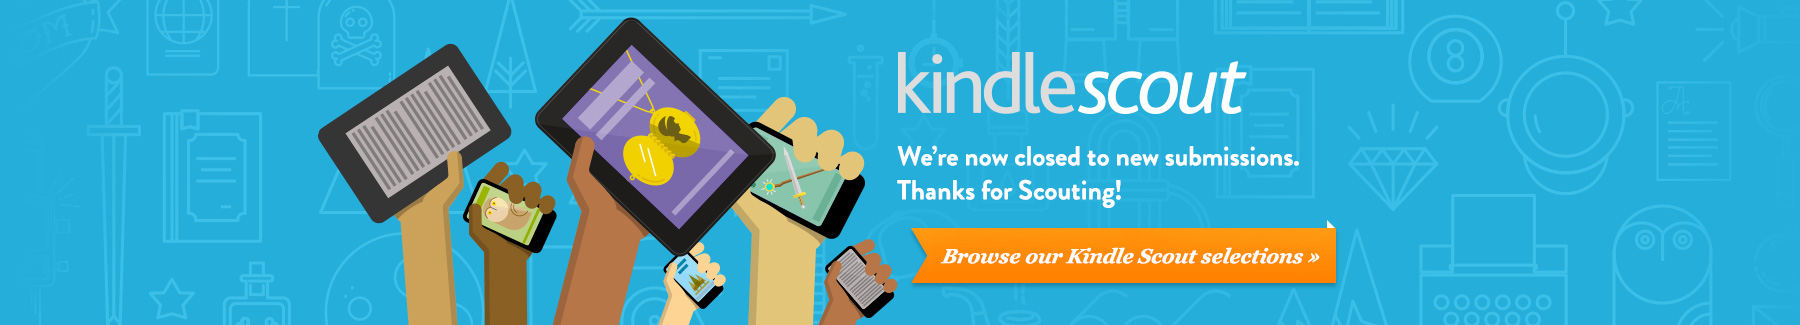 Kindle Scout is now closed to new submissions. Thanks to our vibrant and supportive Scout community, hundreds of books were selected and published since Kindle Scout was started in 2014.